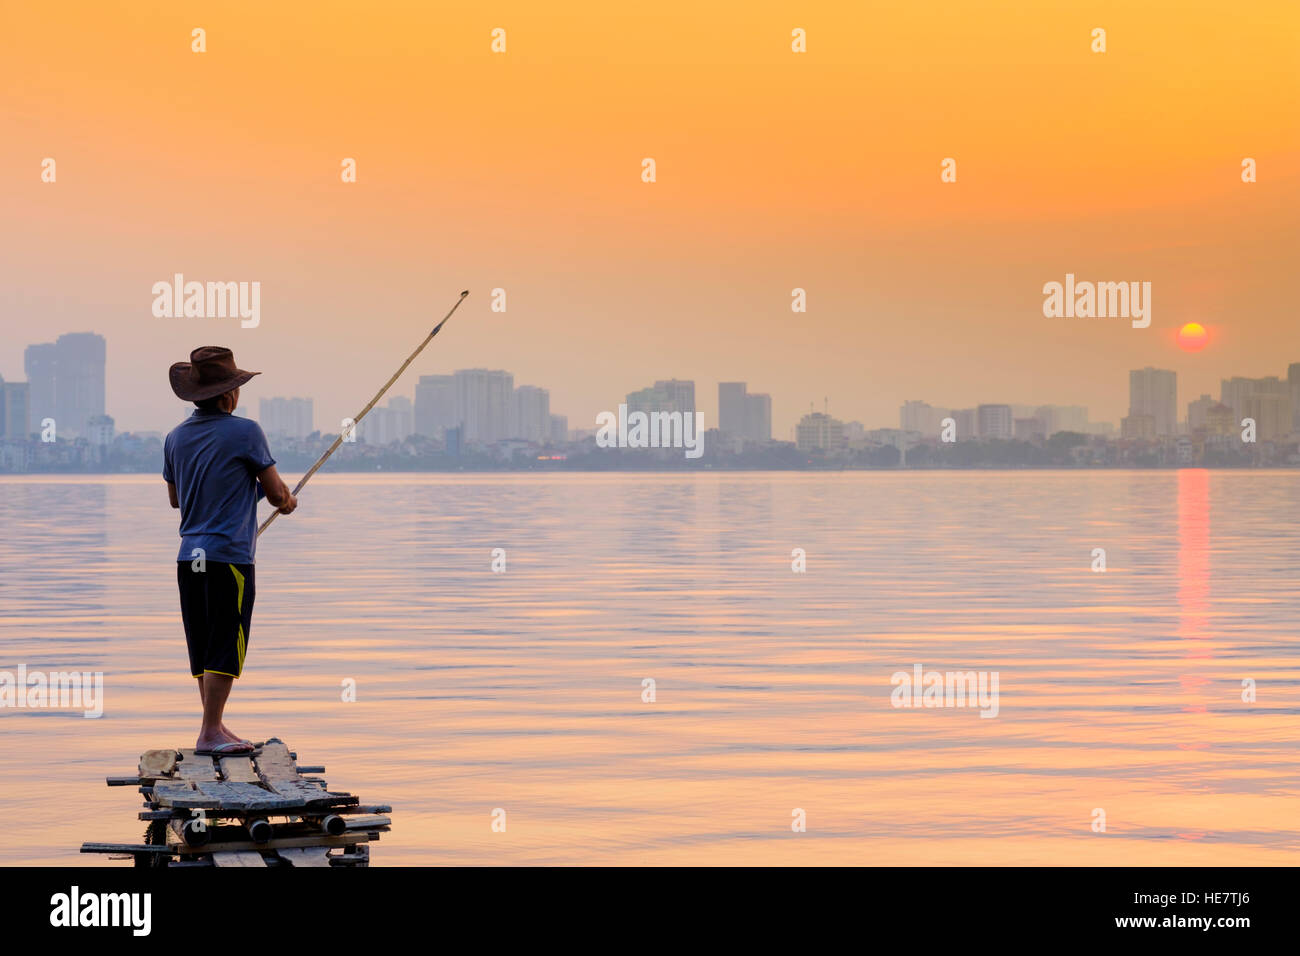 A man fishing on the West Lake in Hanoi, Vietnam Stock Photo